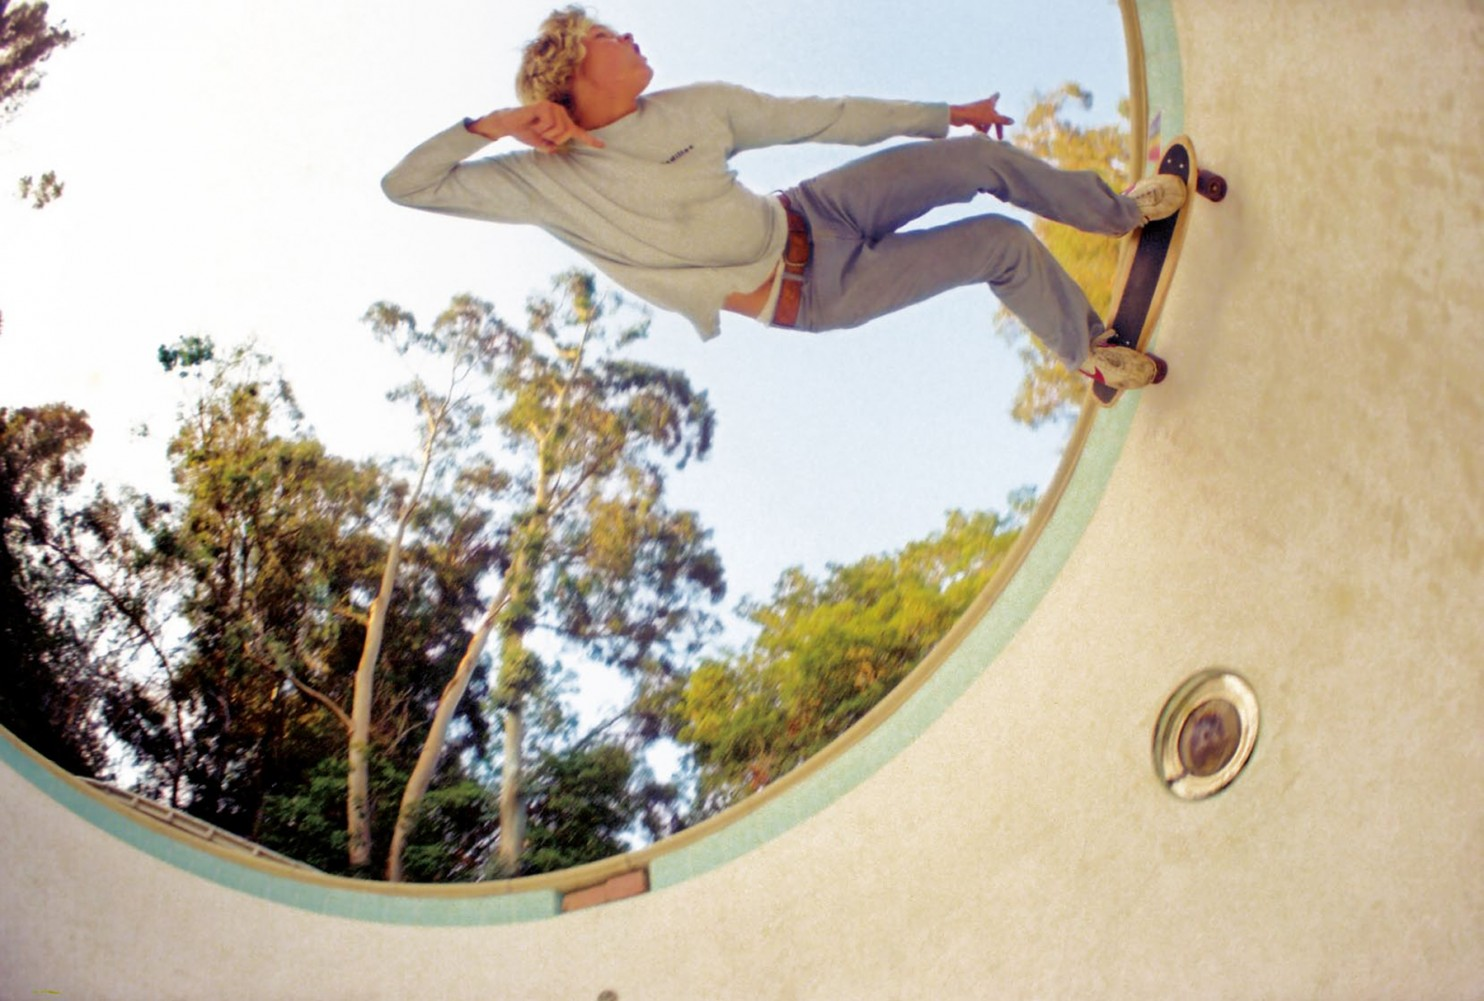 Sk8 All Skateboarding In The 70s Hugh Holland Quot Locals Only Quot